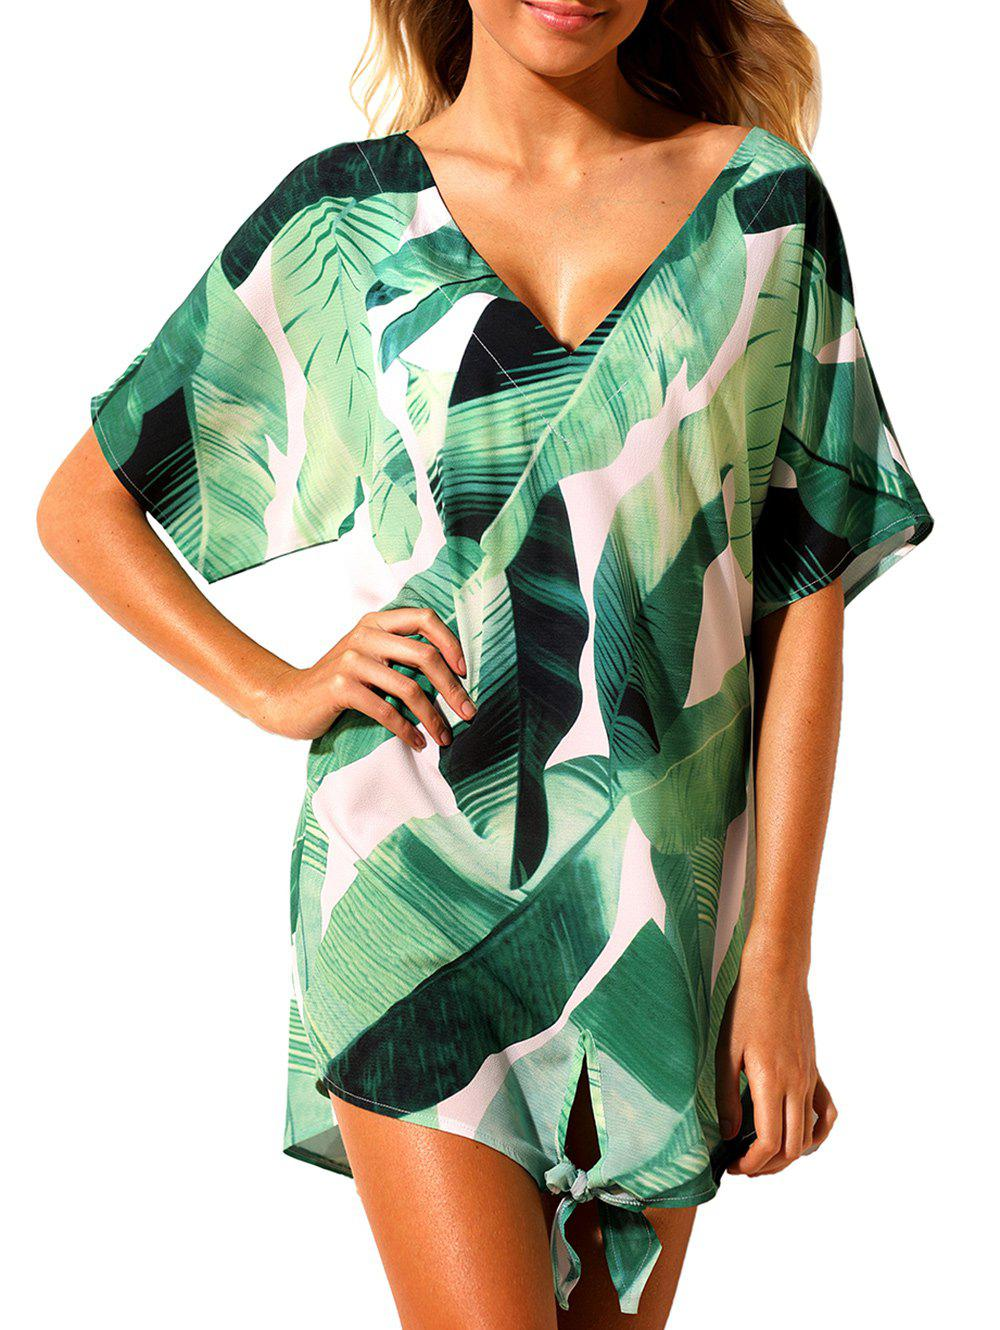 Knot Banana Leaf Print Cover Up Dress guitar print knot side dress